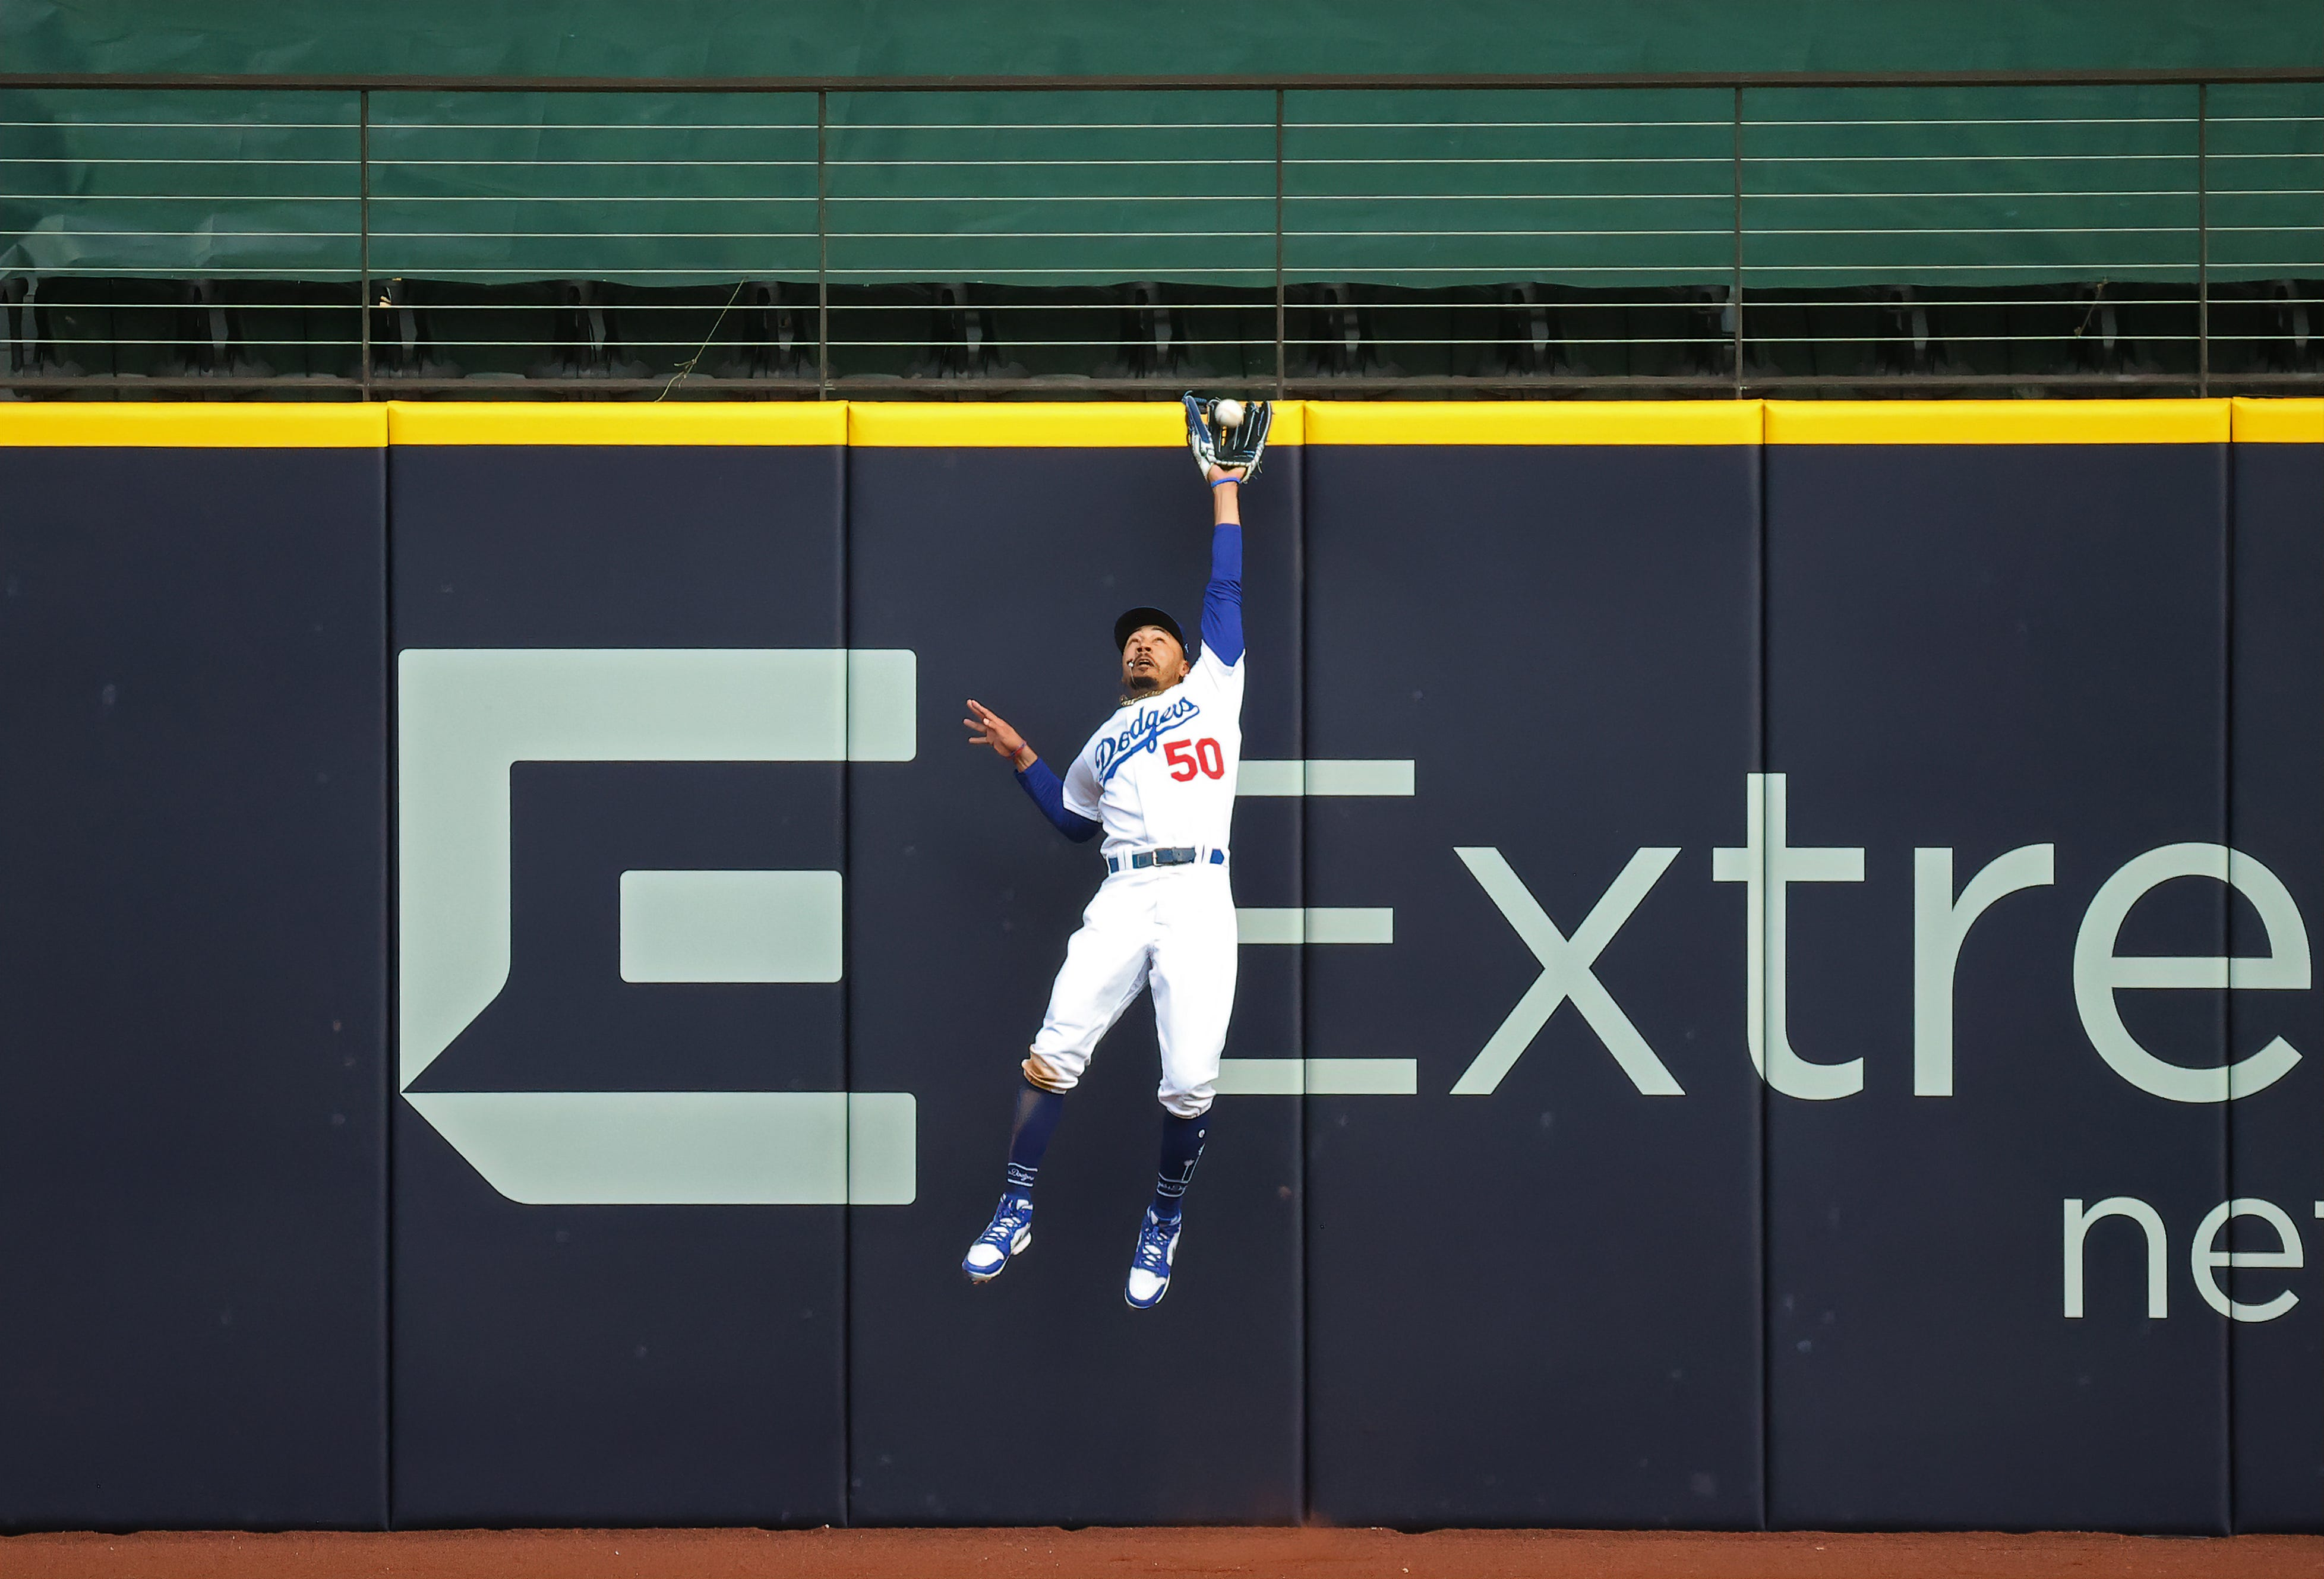 'An unbelievable play:' Mookie Betts comes up big again as Dodgers force Game 7 against Braves in NLCS